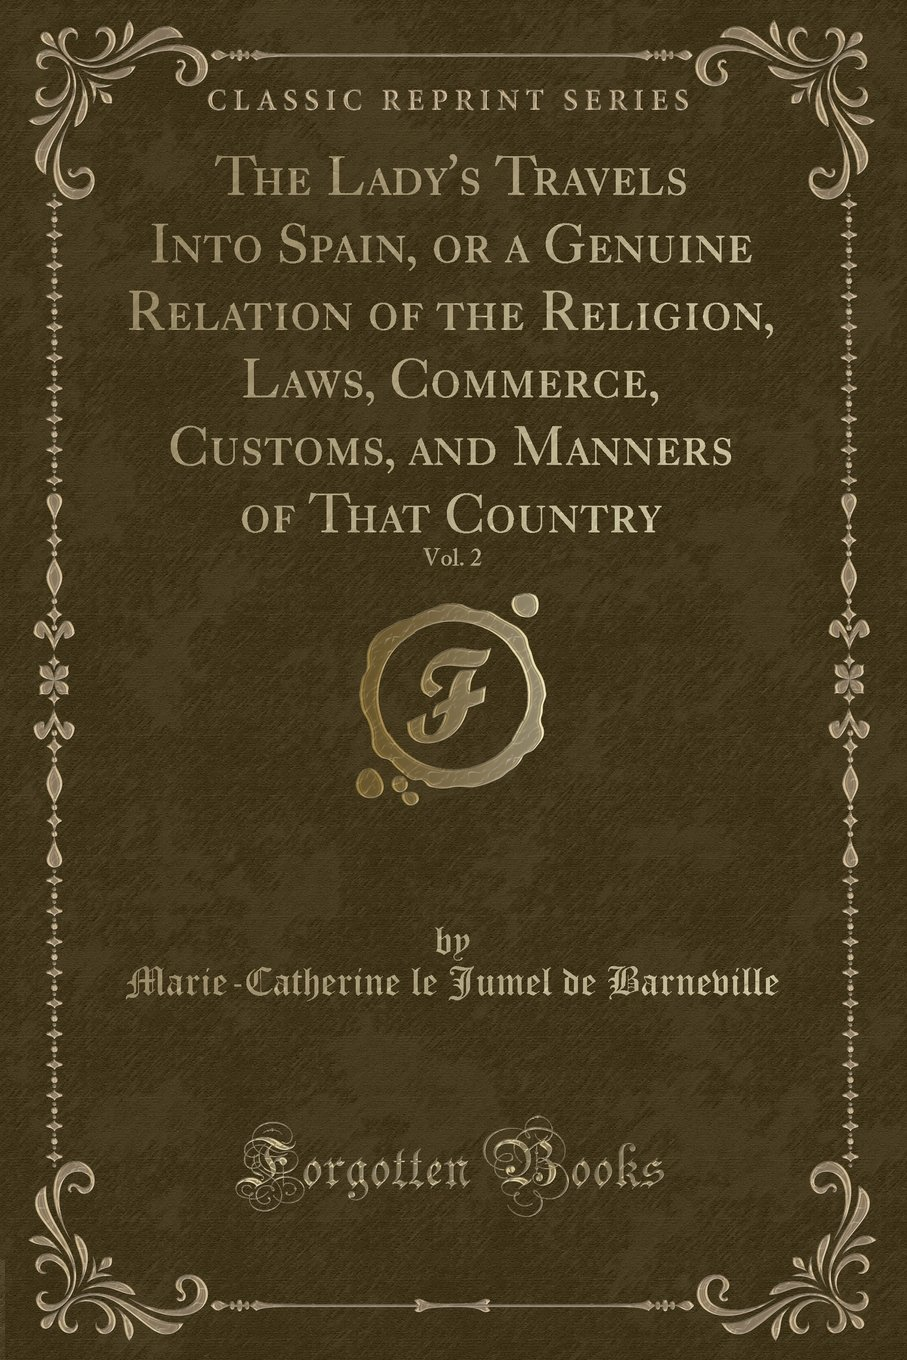 Read Online The Lady's Travels Into Spain, or a Genuine Relation of the Religion, Laws, Commerce, Customs, and Manners of That Country, Vol. 2 (Classic Reprint) ebook